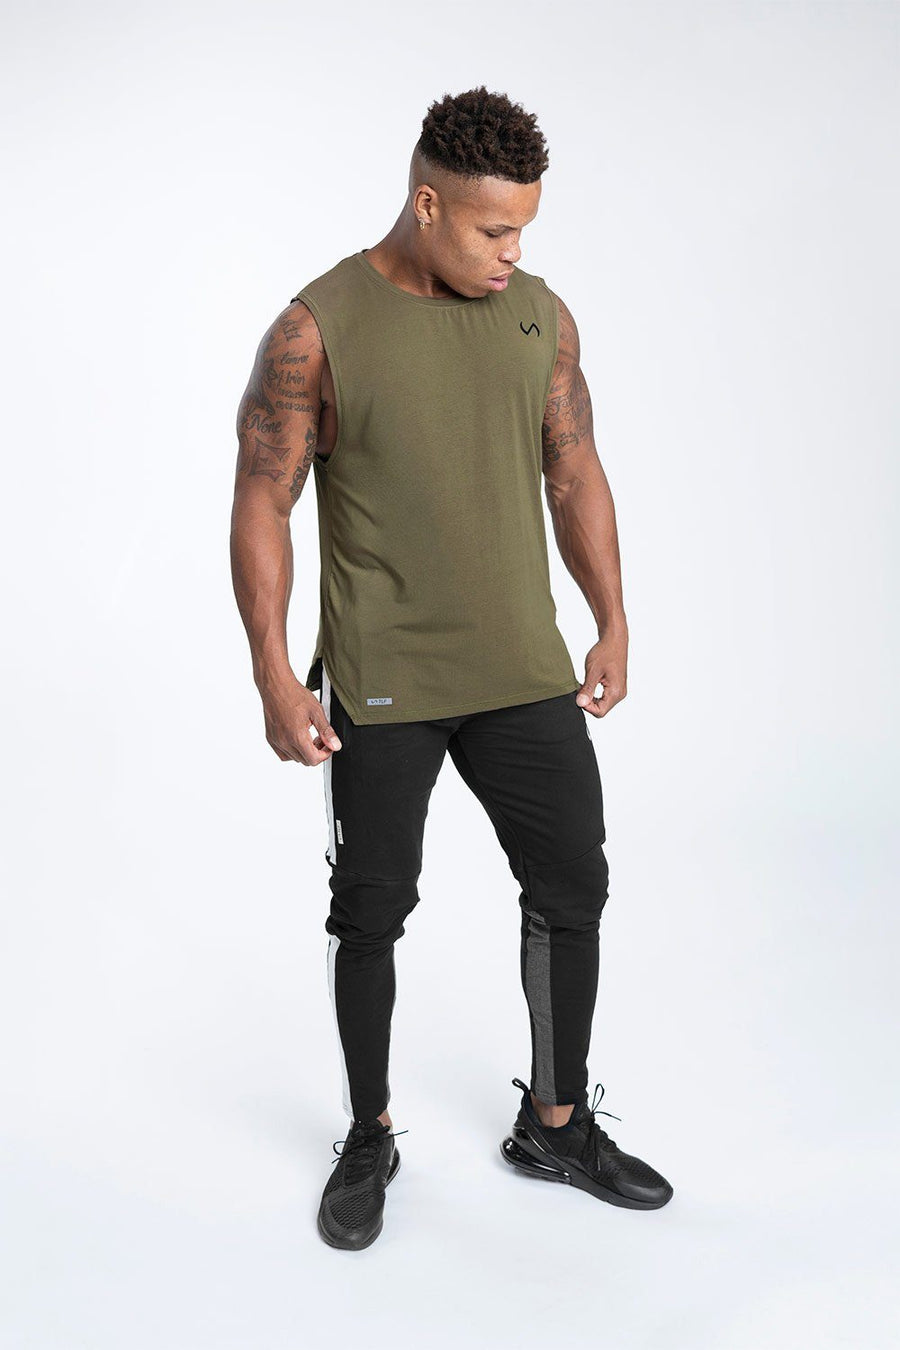 TLF Racer Drop Armhole Workout Tank - Military